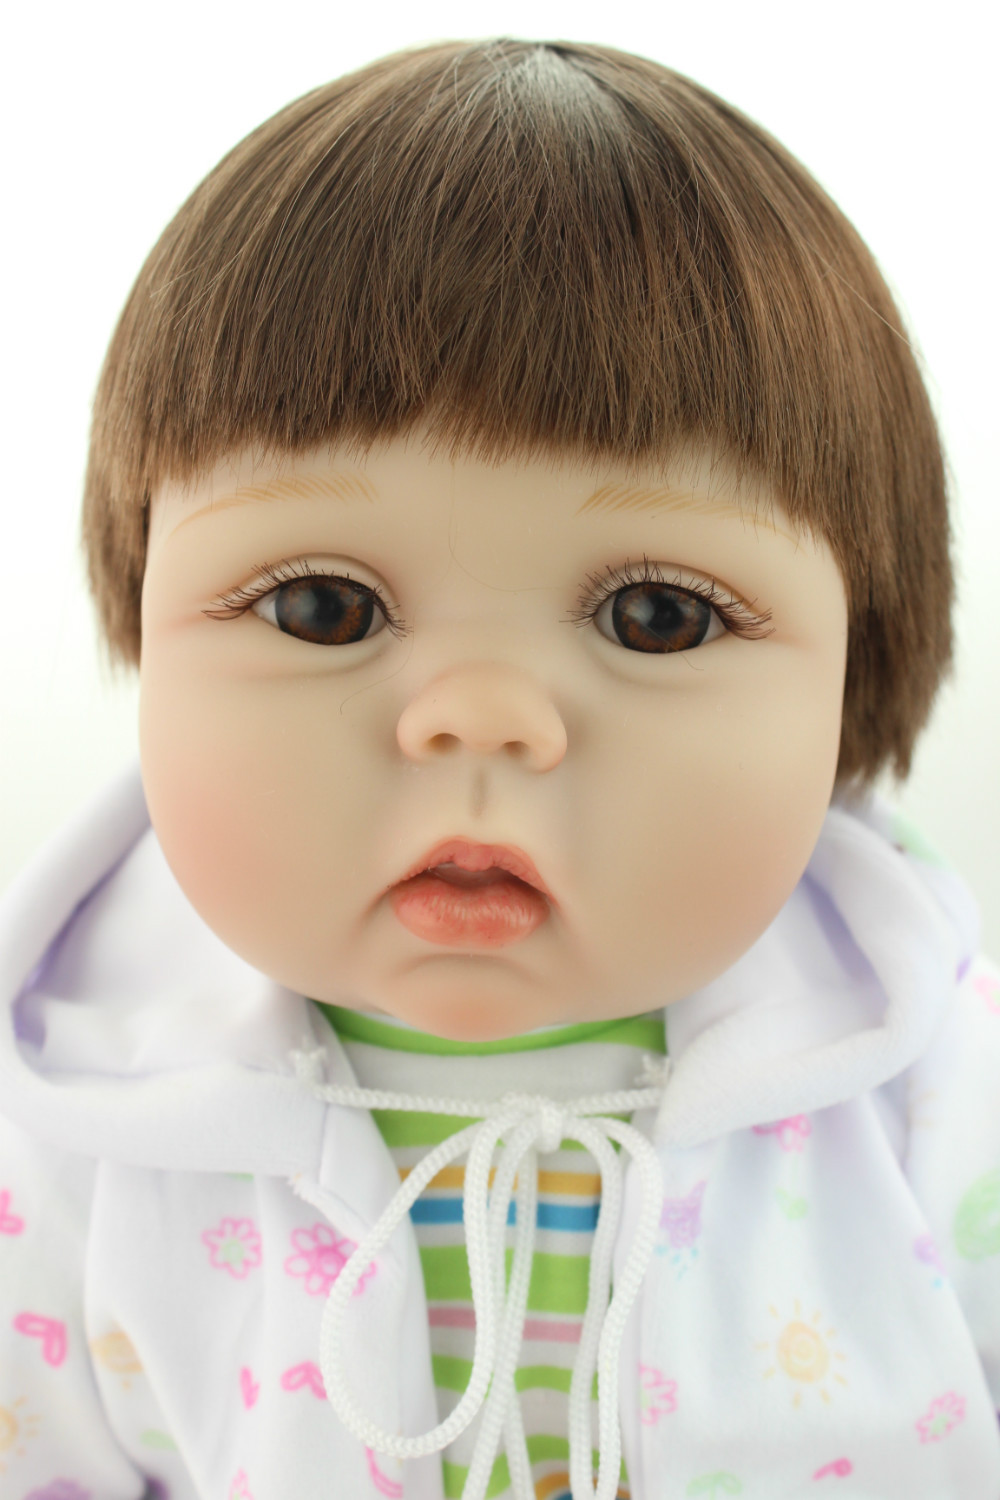 New born baby doll lifelike reborn baby doll rooted human hair fashion doll Childen's Day gift lovely gifts(China (Mainland))